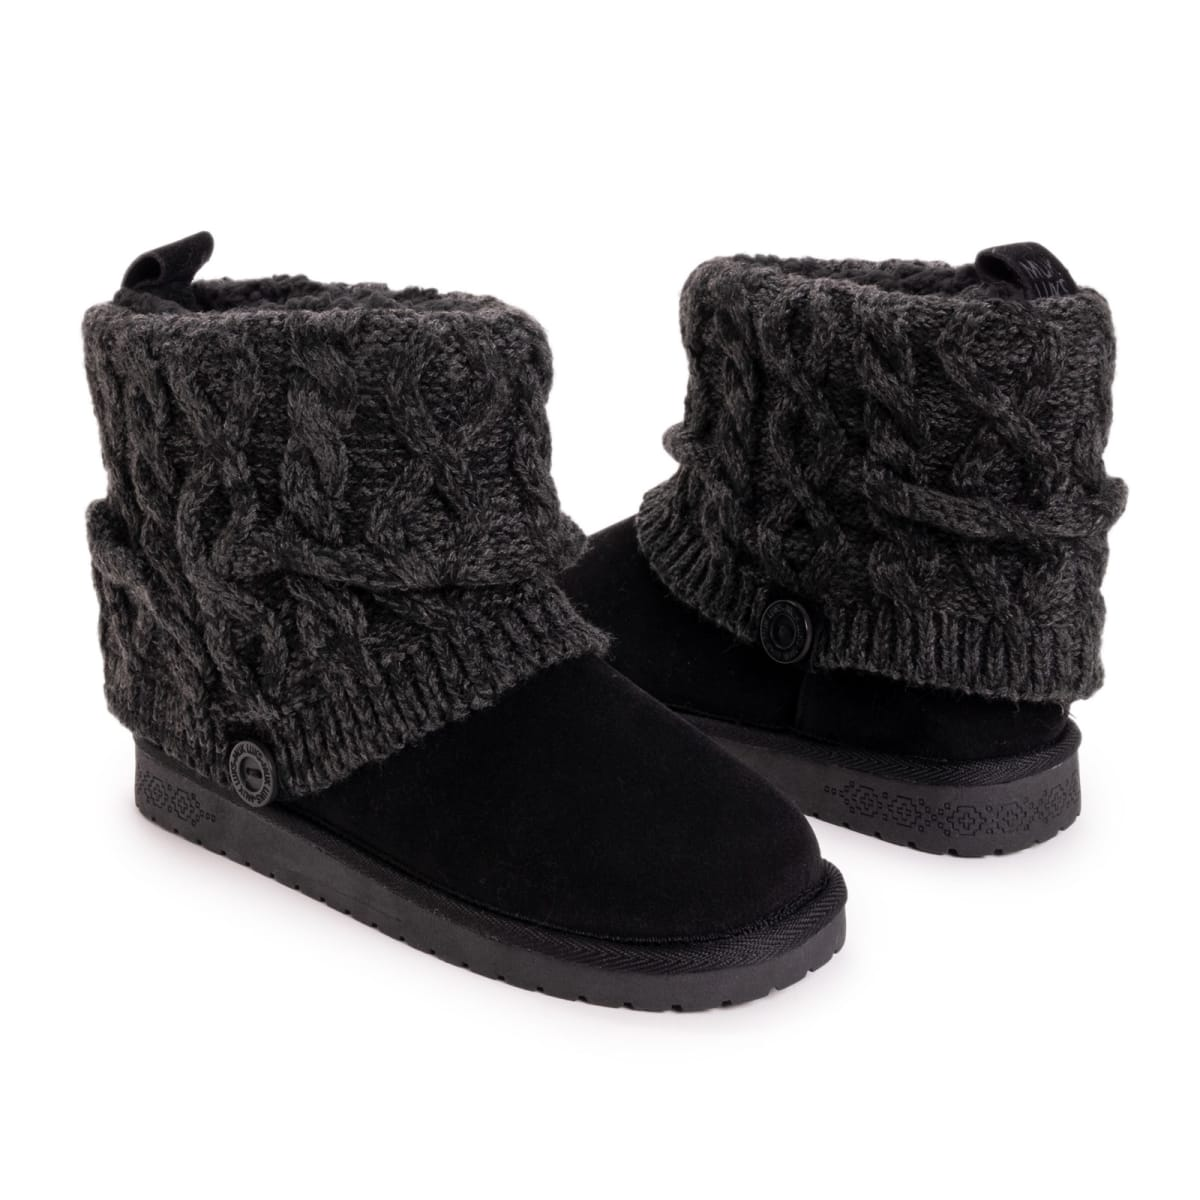 MUK LUKS Women's Laurel Boots – Only .99!